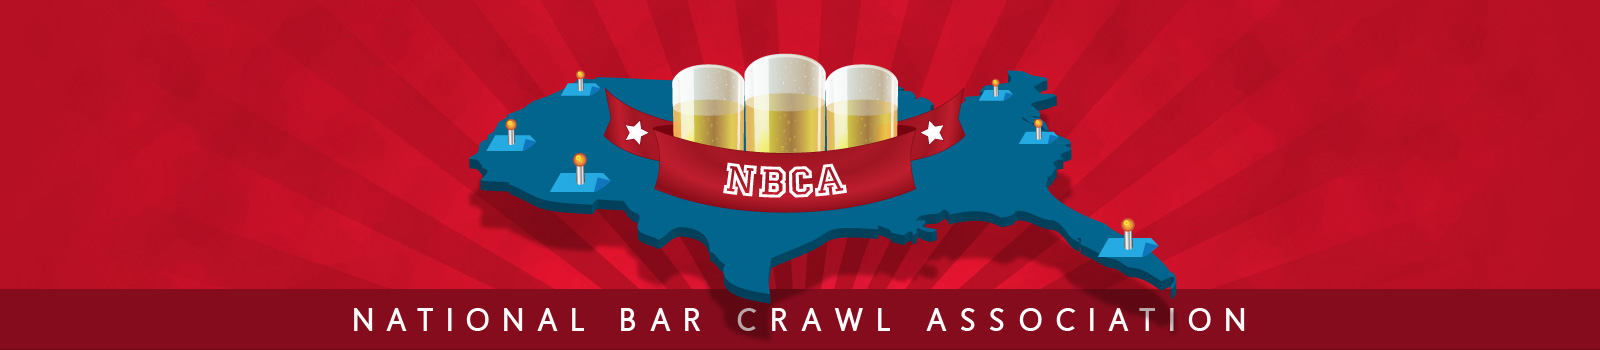 Tickets for Tampa Bar Crawl in Tampa from ShowClix